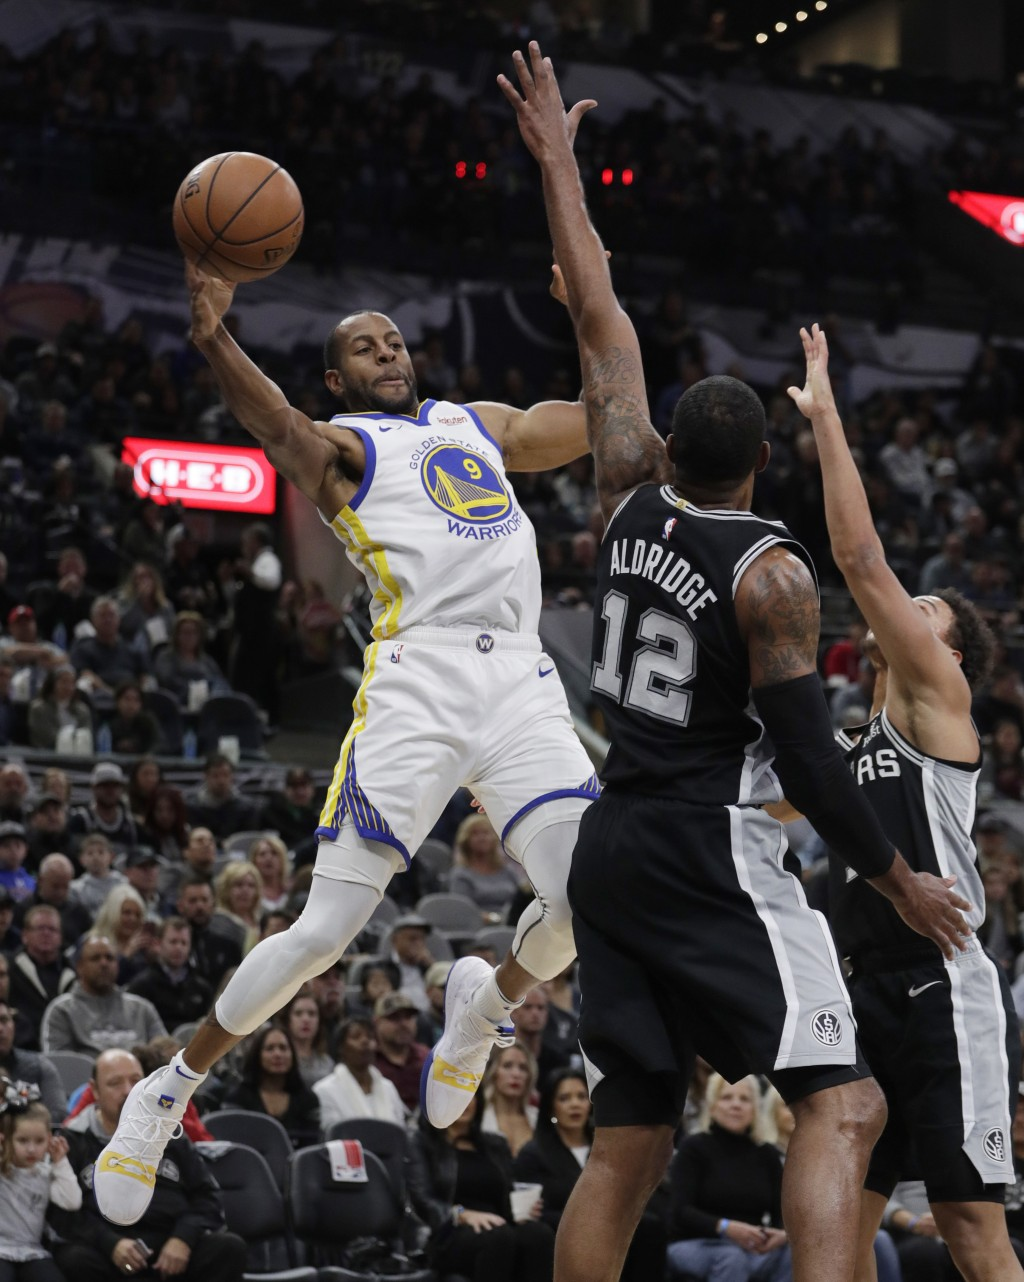 Golden State Warriors guard Andre Iguodala (9) looks to pass the ball as San Antonio Spurs forward LaMarcus Aldridge (12) defends during the first hal